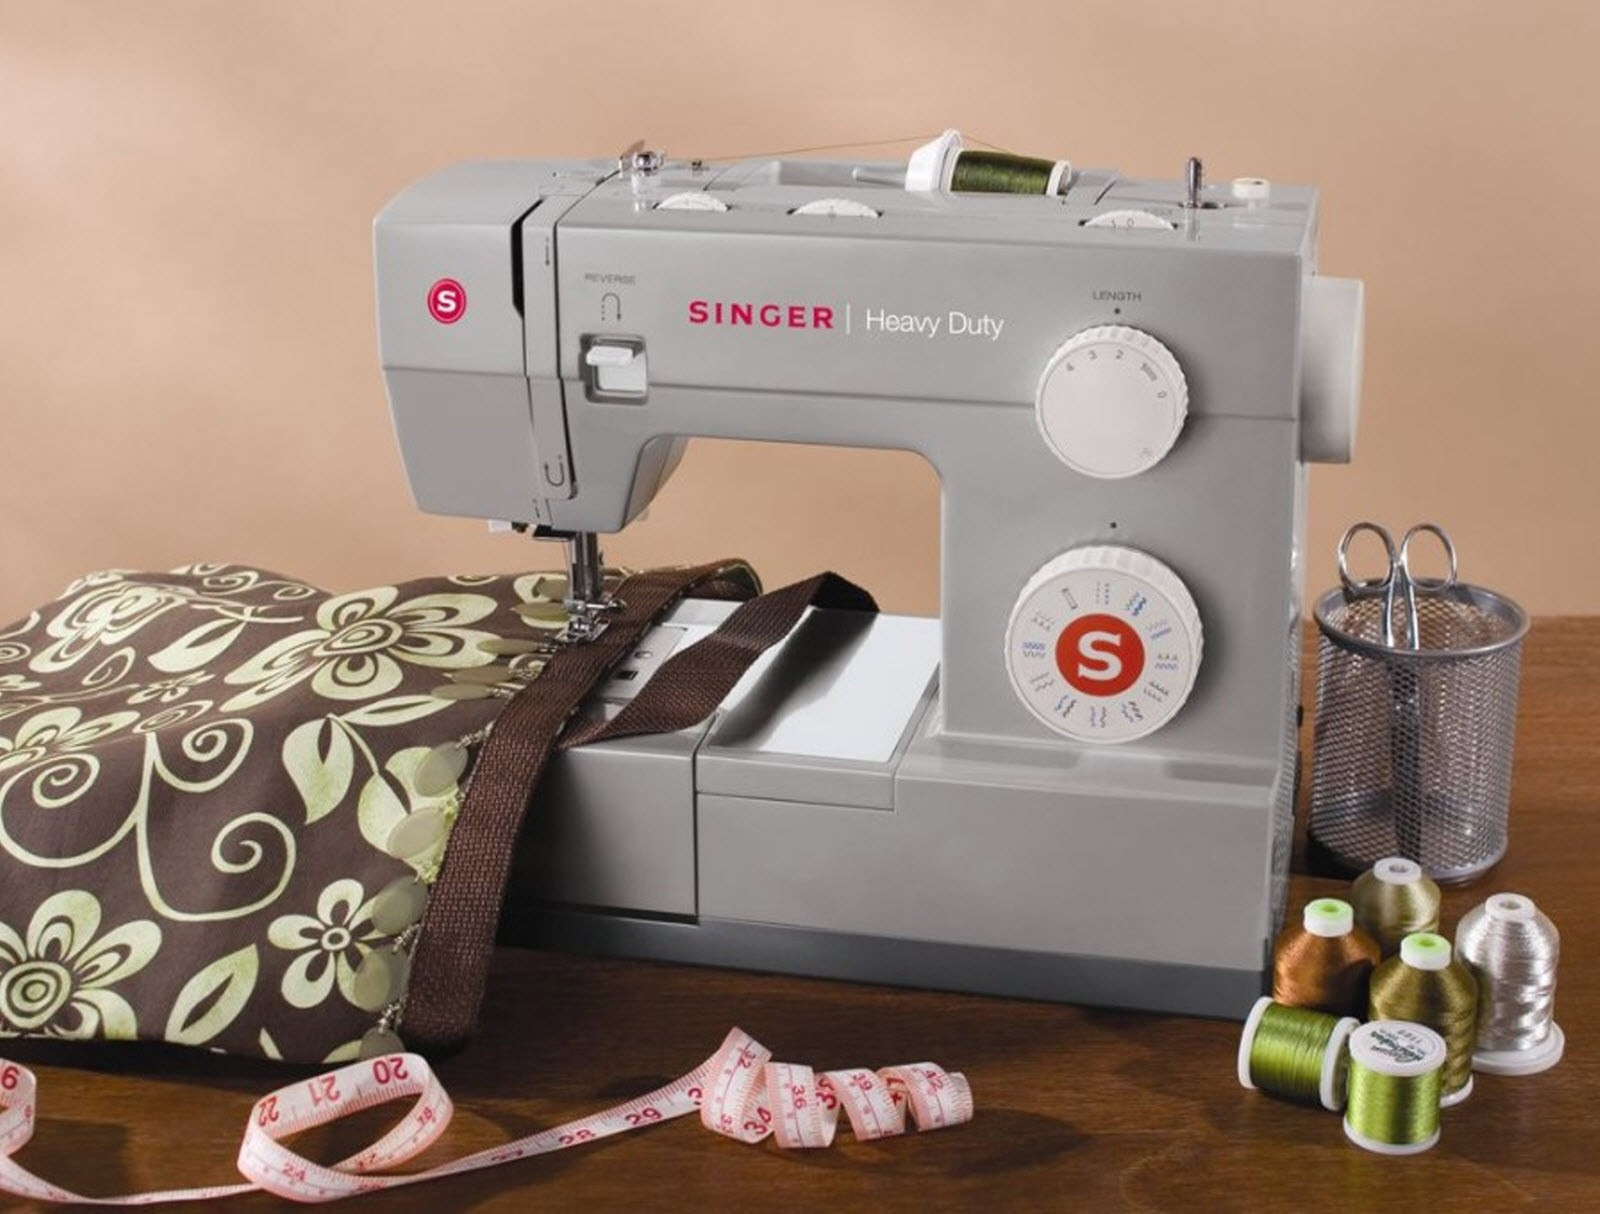 Singer-heavy-duty-sewing-machine